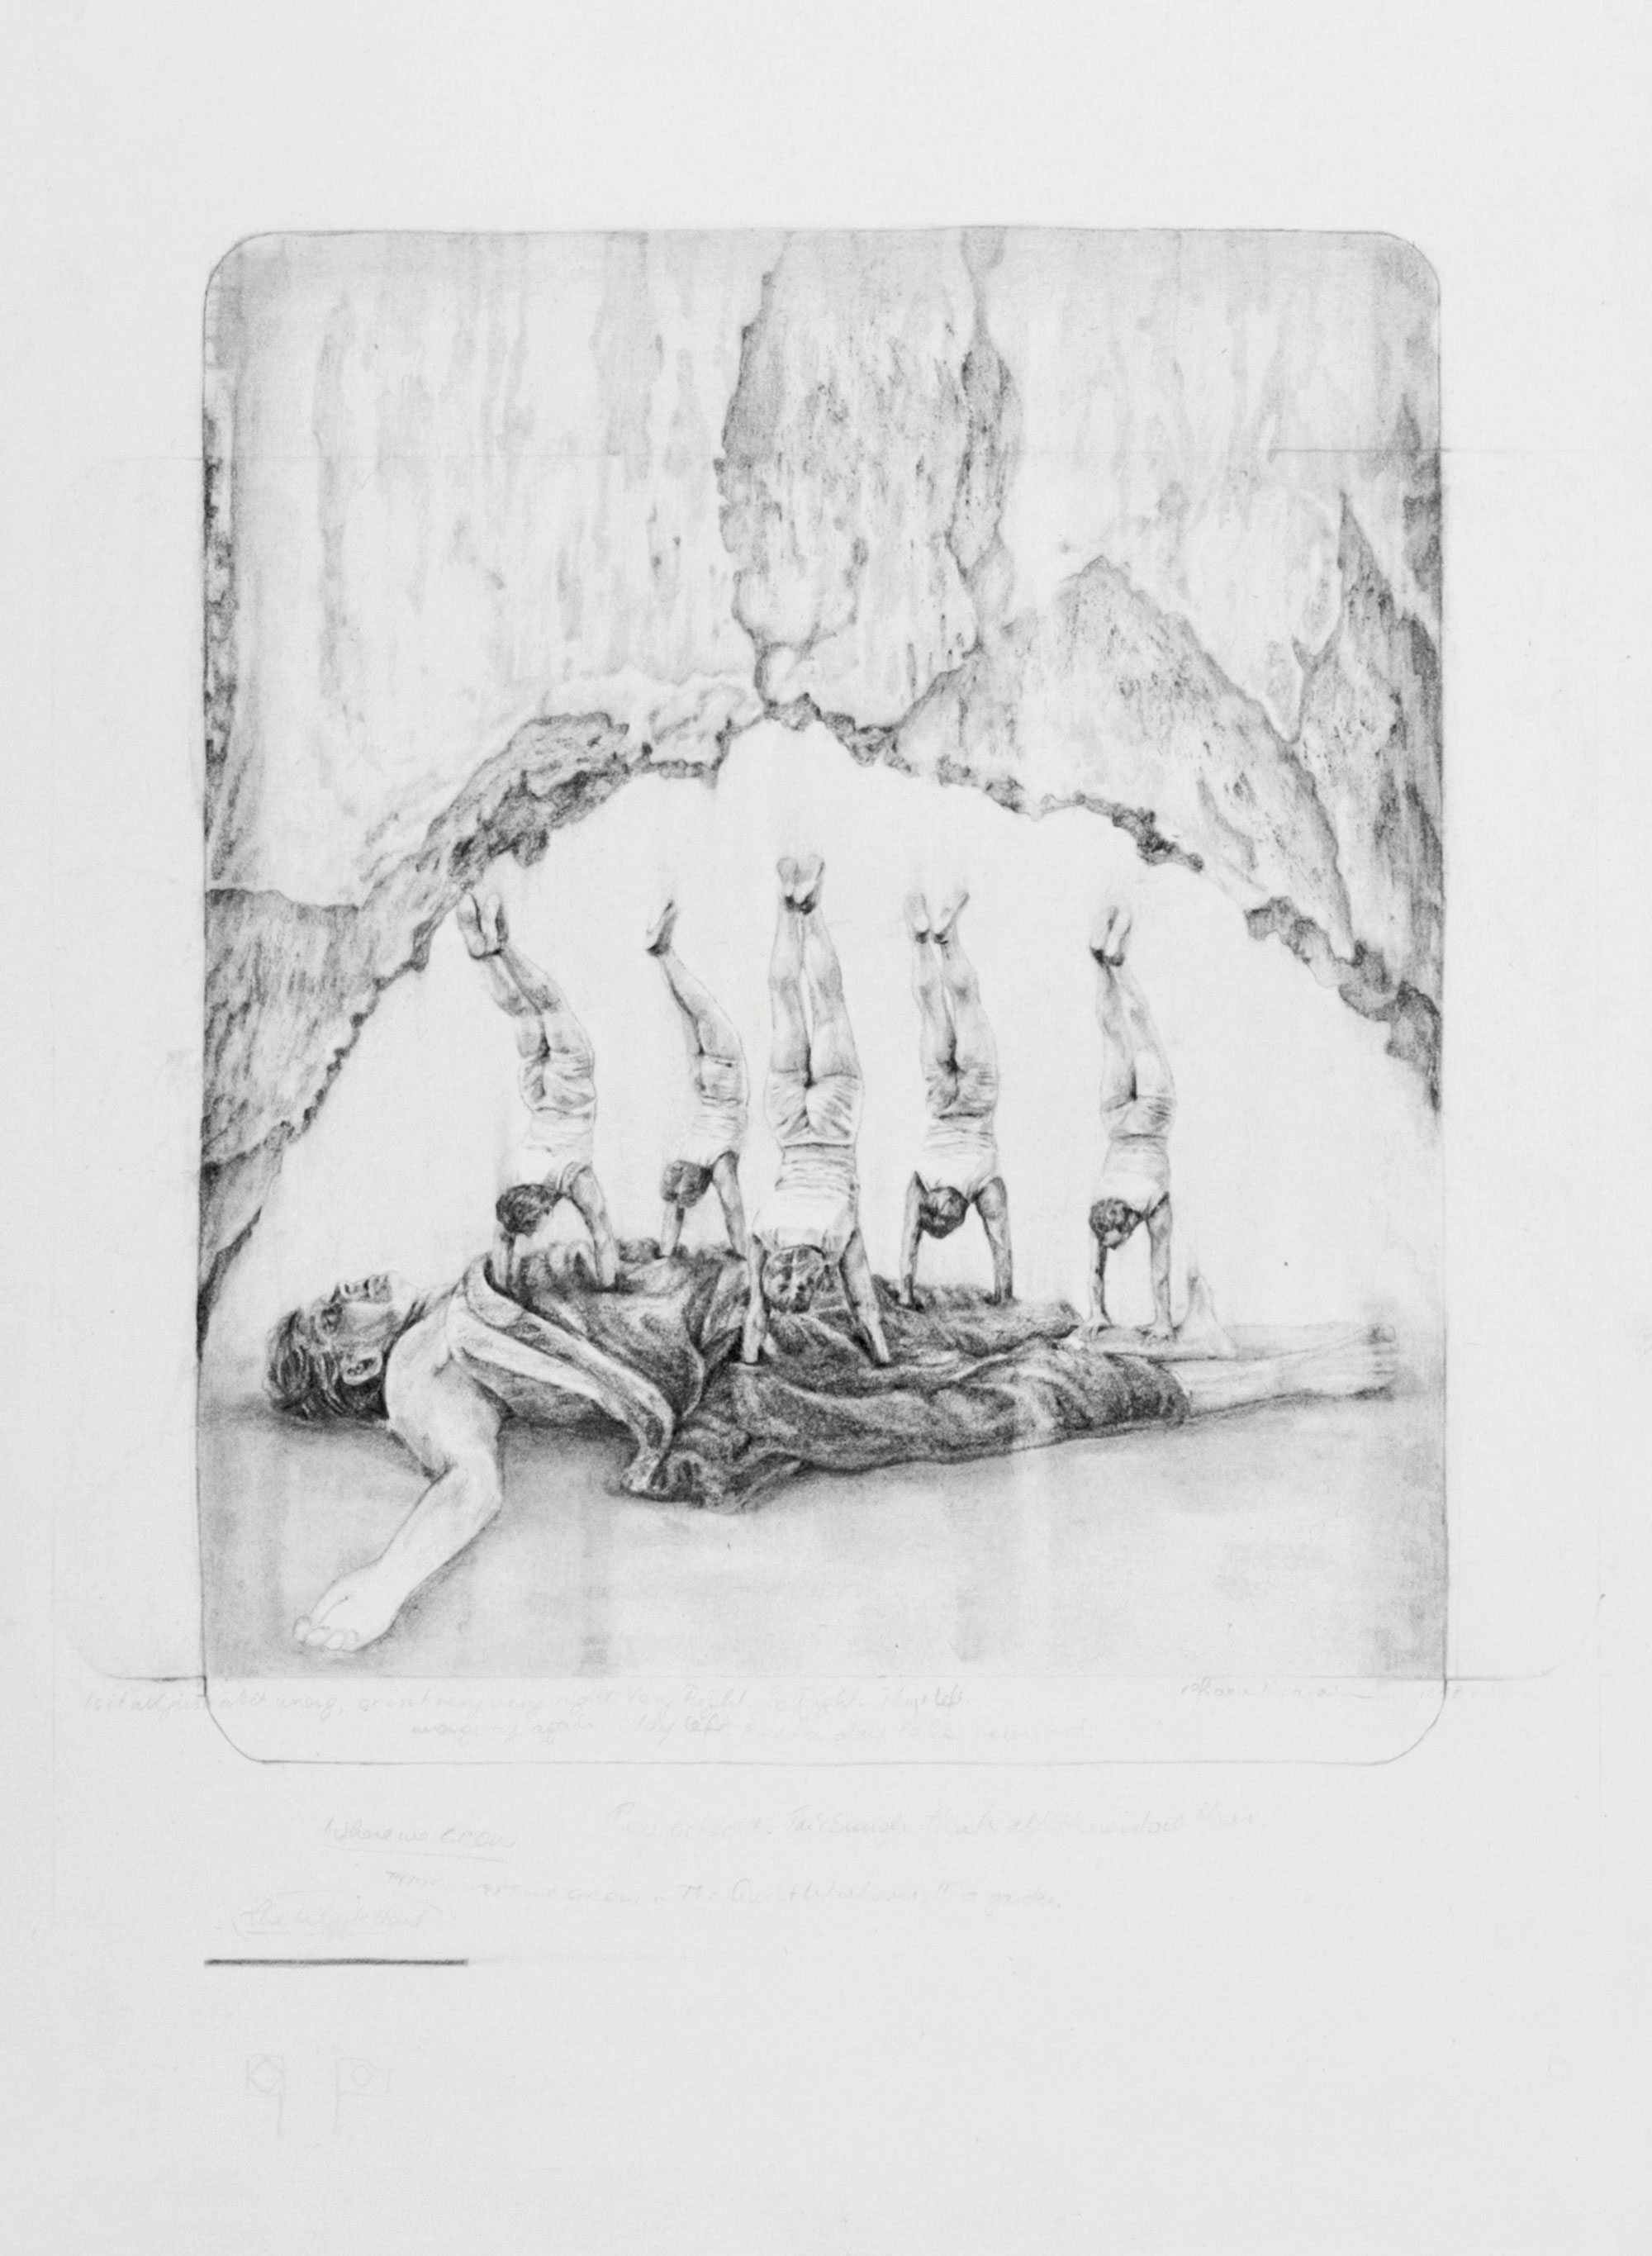 The Quiet Walkover - graphite pencil and carbon pencil on paper, 28 x 38 cm, 2011